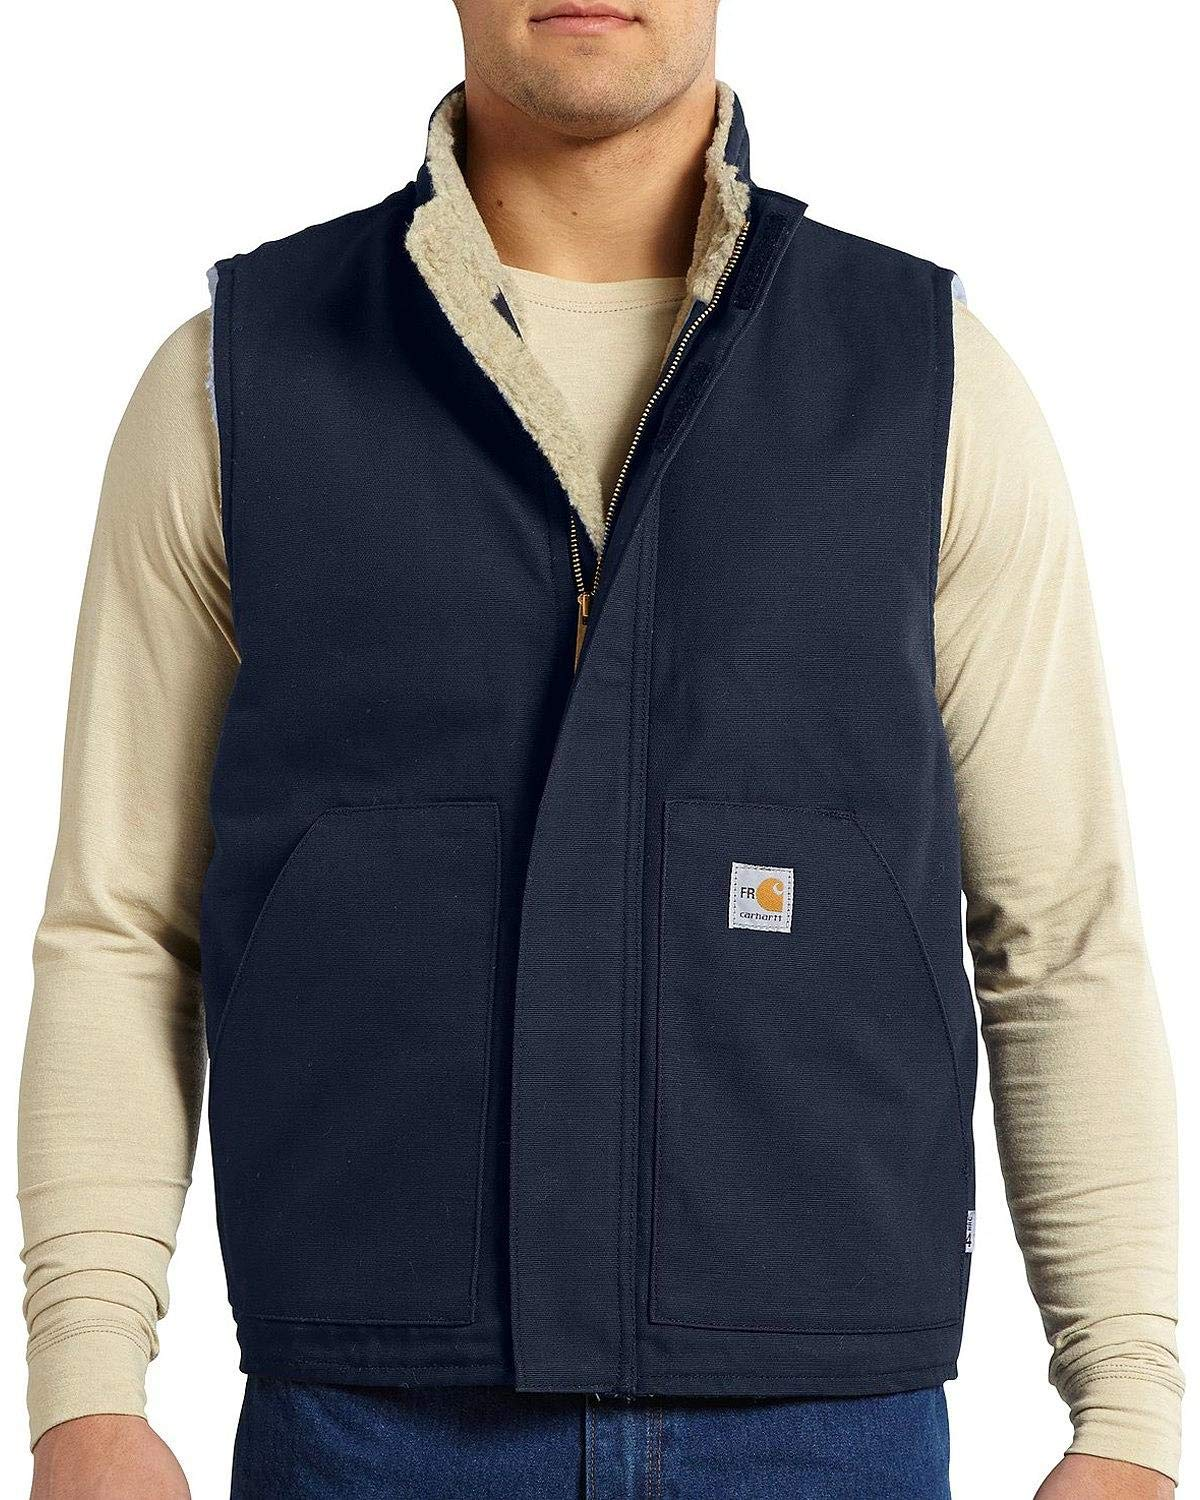 Carhartt Men's Flame Resistant Mock Neck Sherpa Lined Vest,Dark Navy,Large by Carhartt